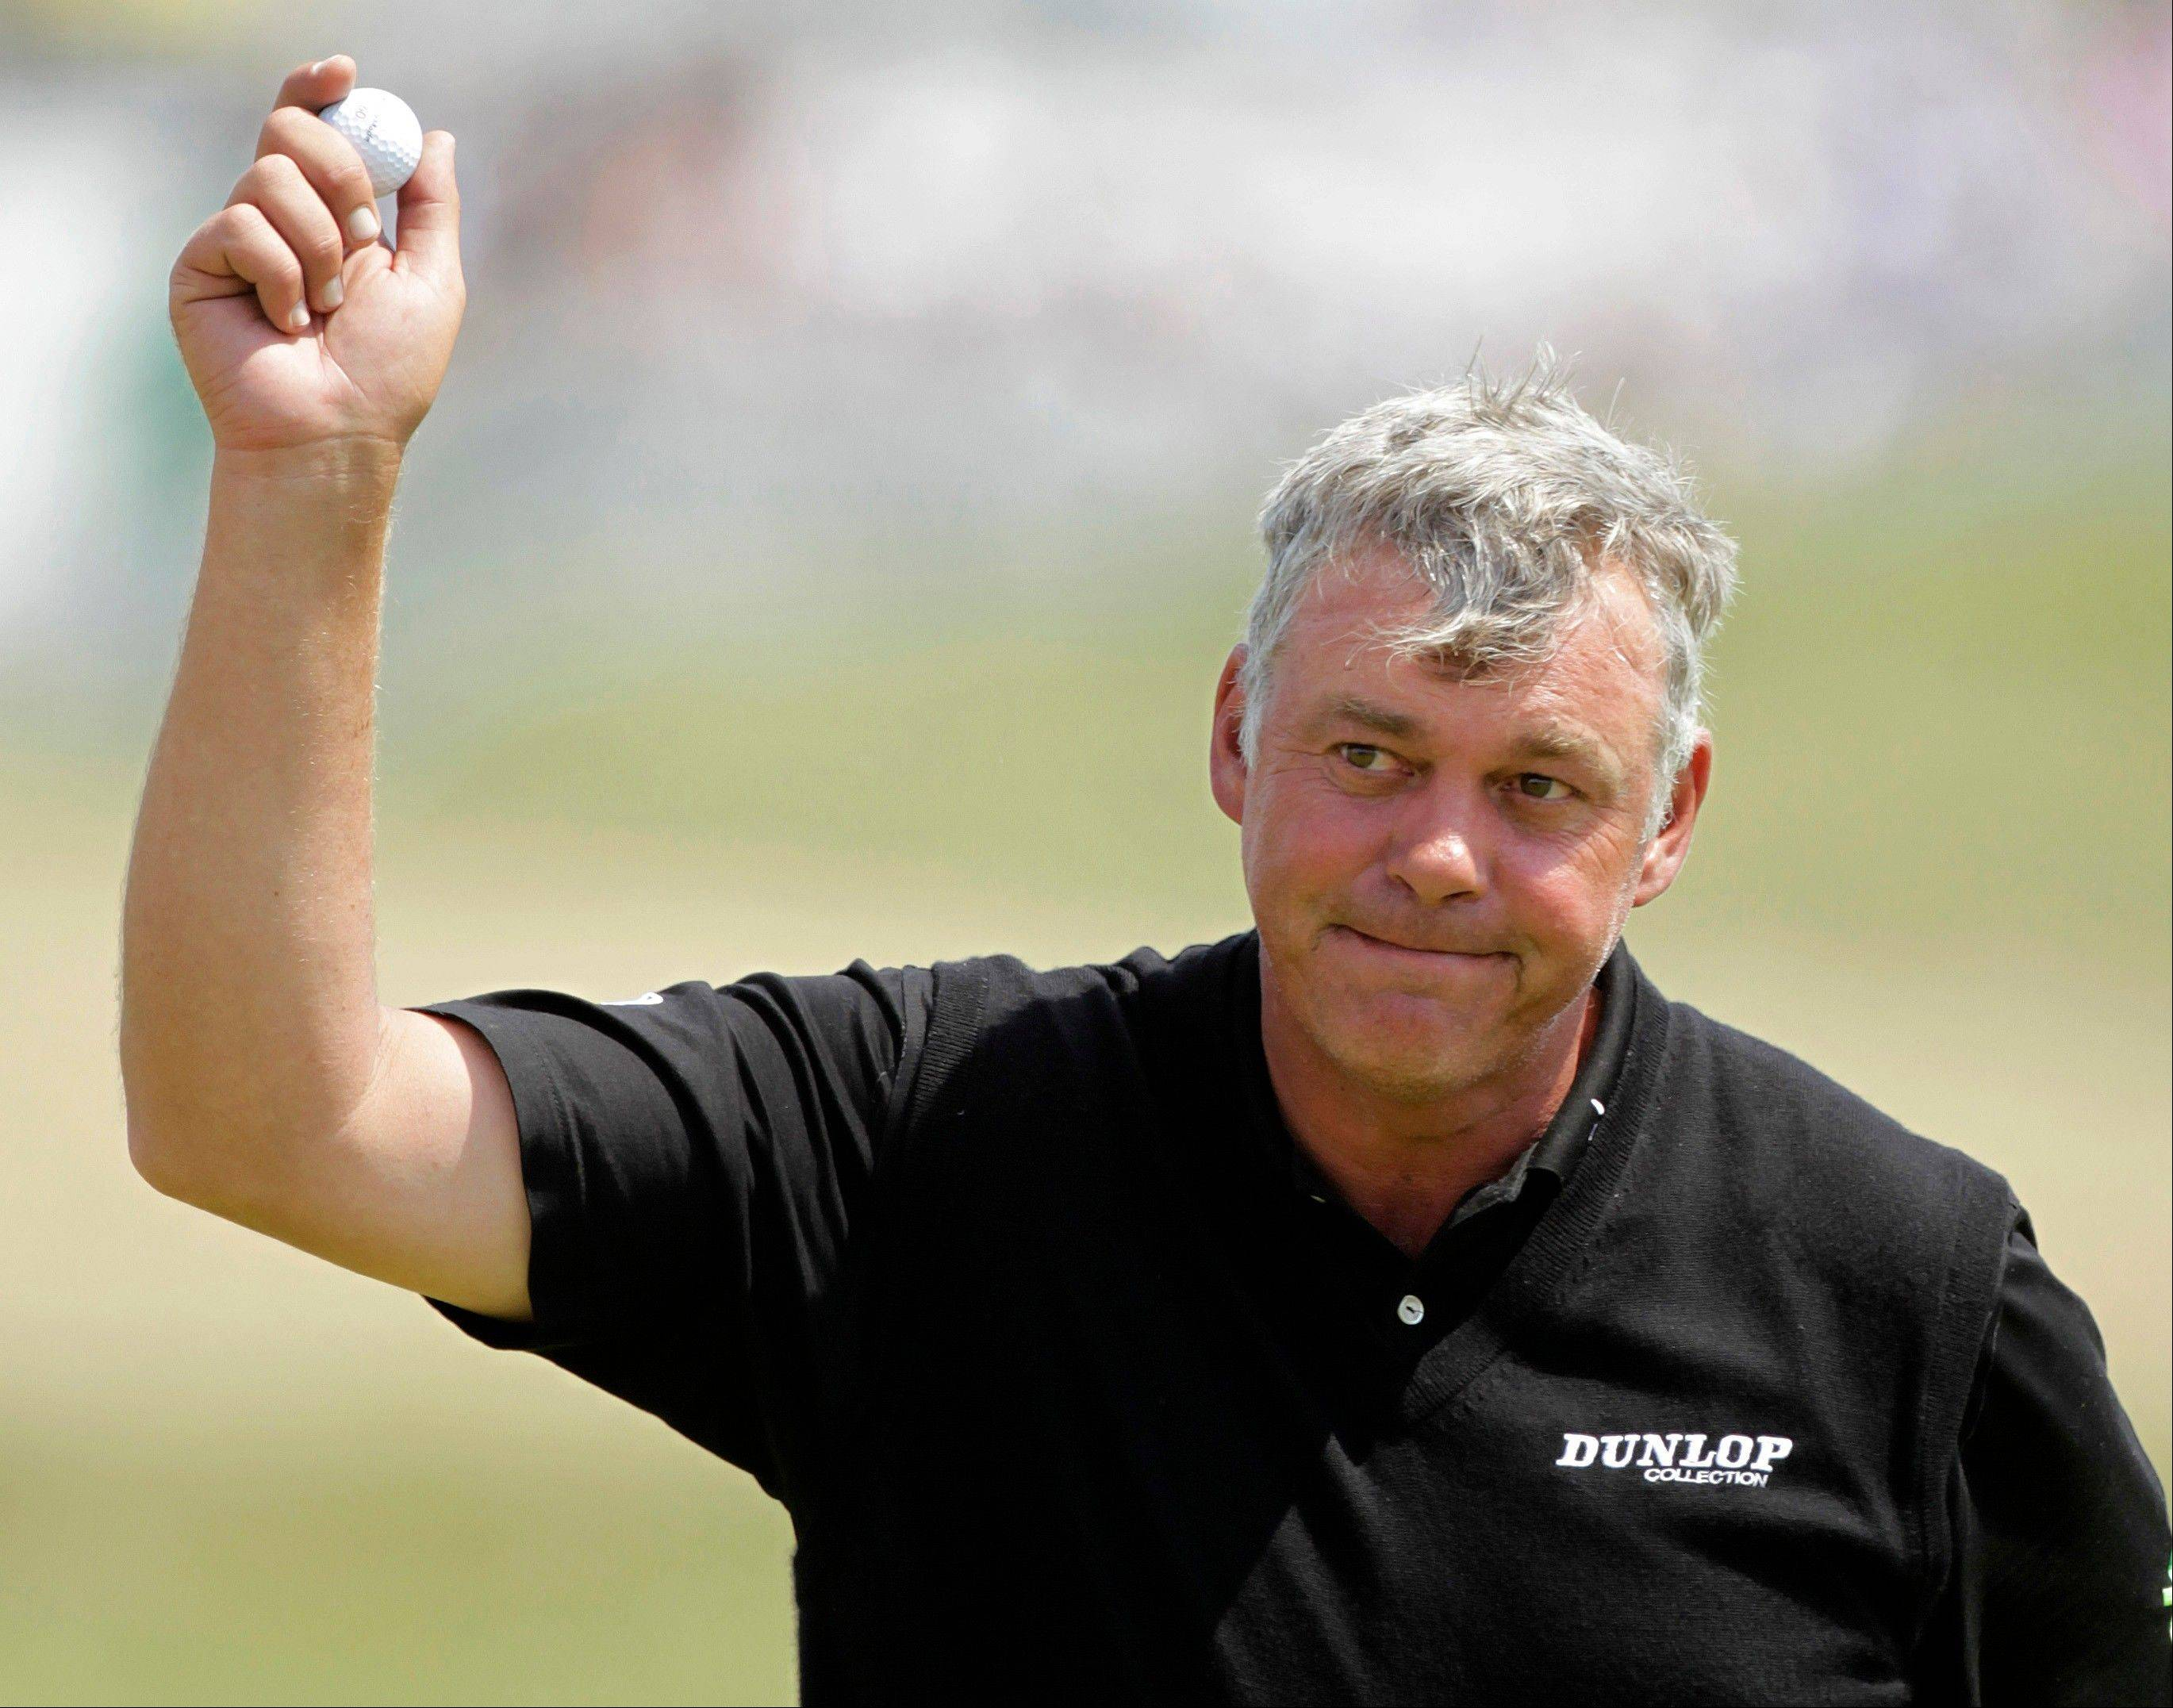 Northern Ireland's Darren Clarke reacts Friday after putting on the 18th green during the second day of the British Open Golf Championship at Royal St George's golf course Sandwich, England.